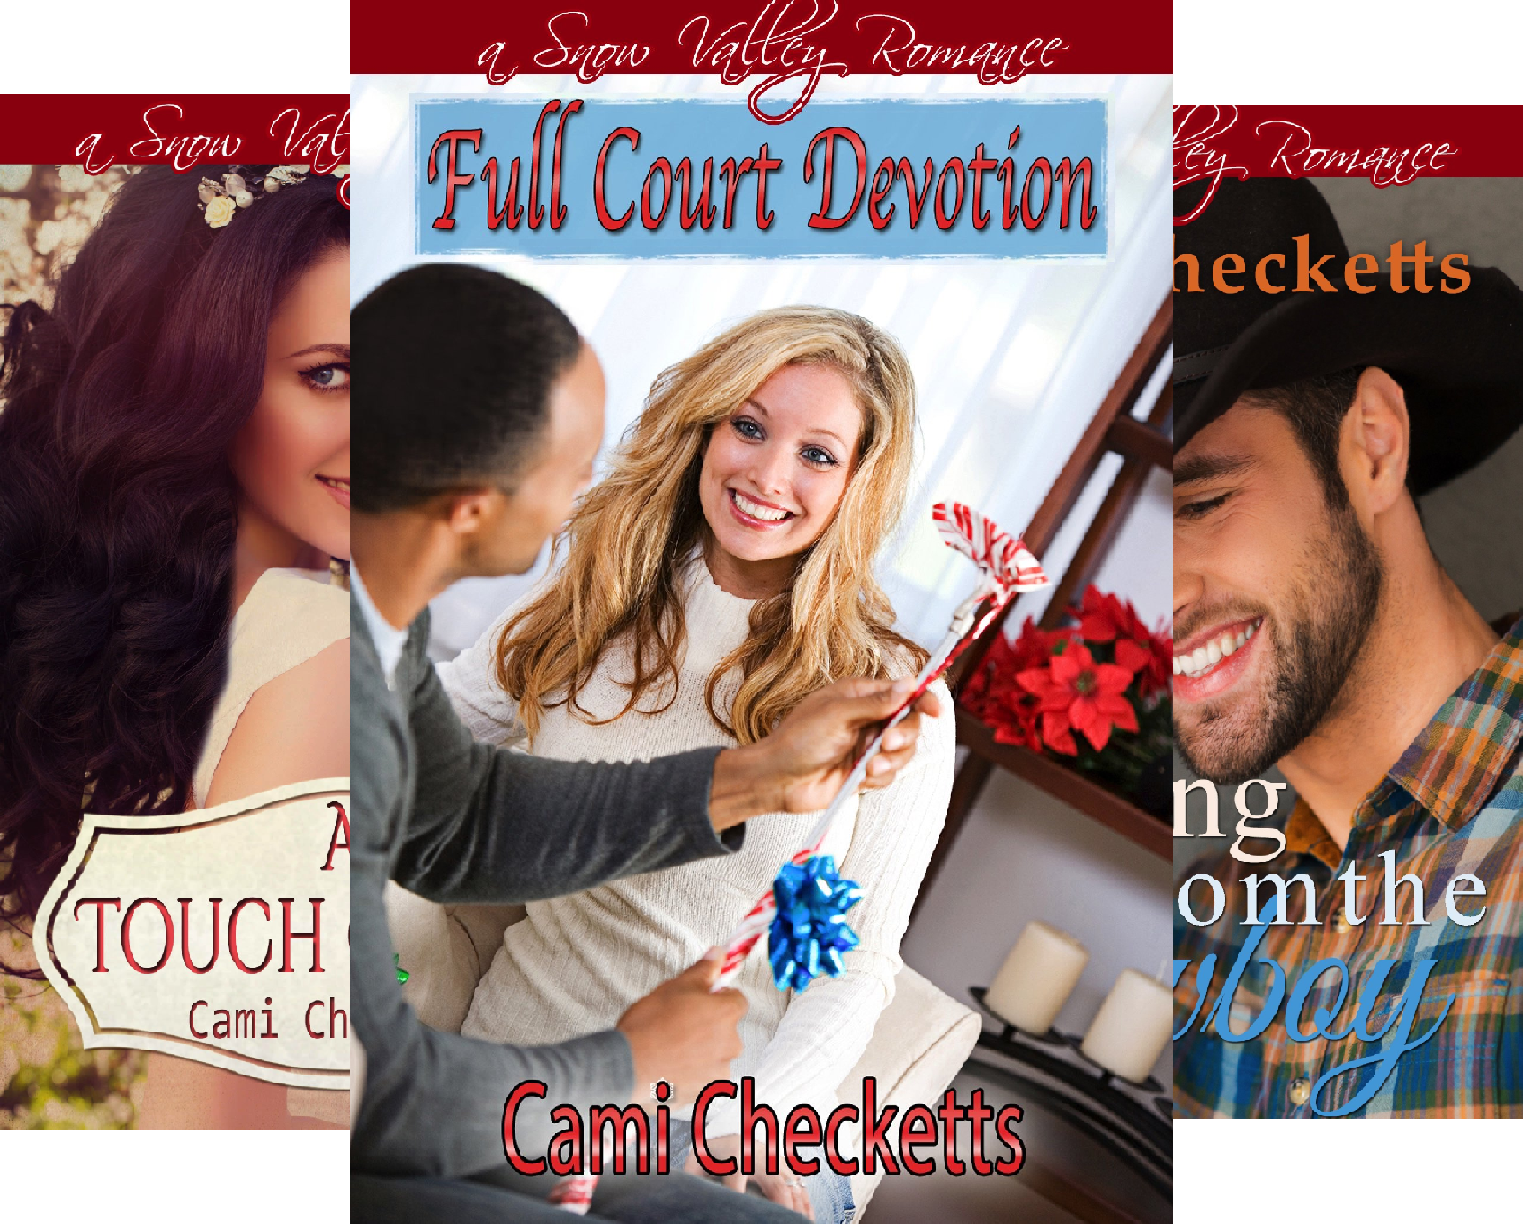 Cami's Snow Valley Romance (6 Book Series)